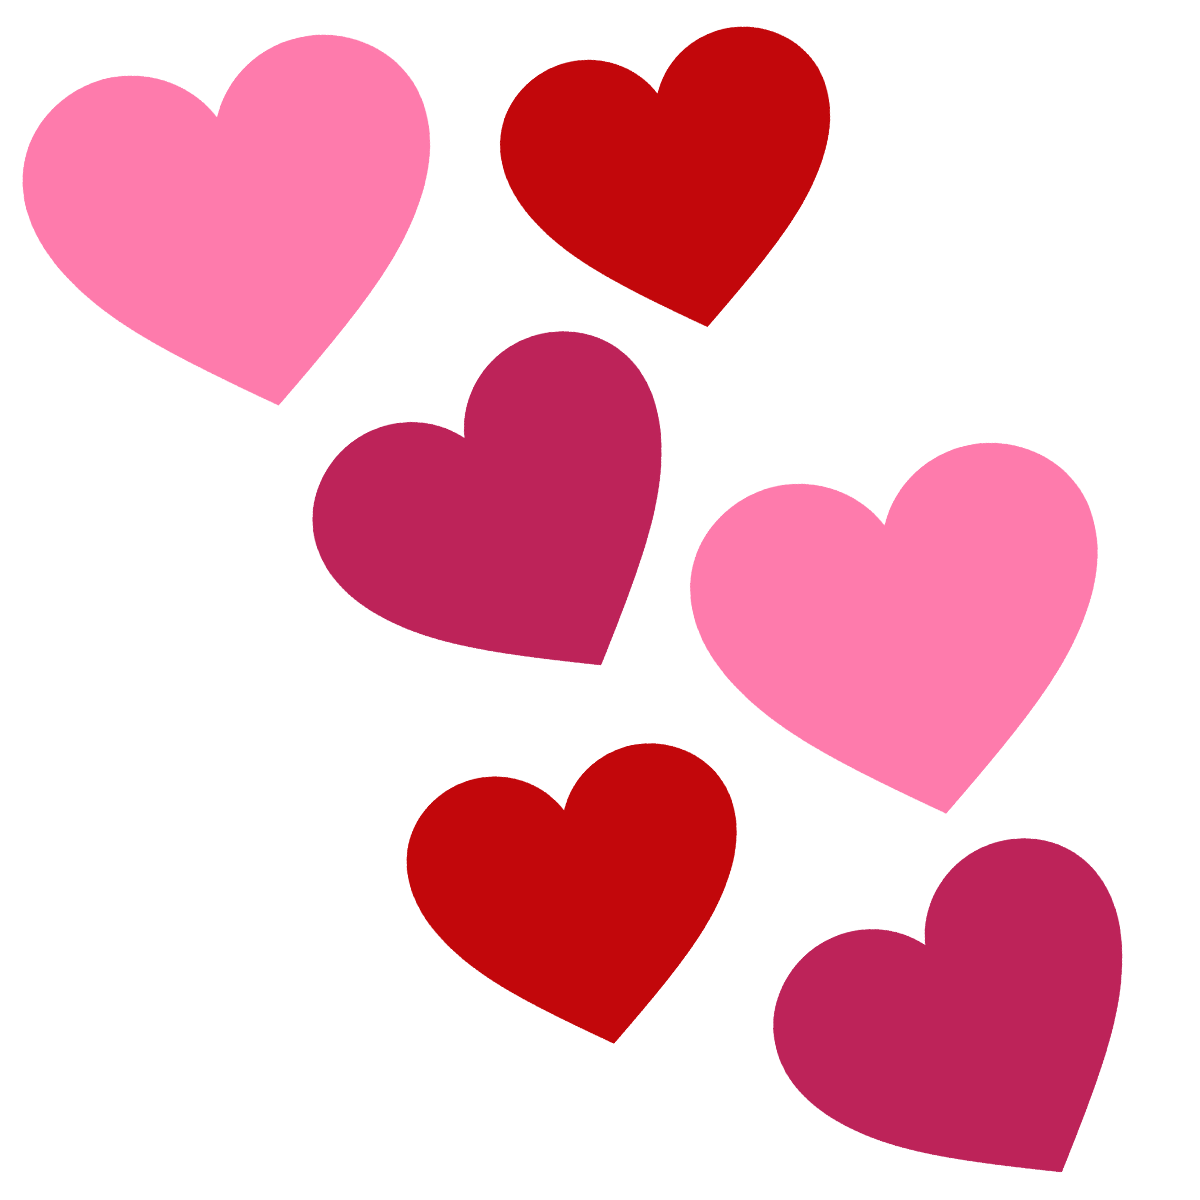 Heart Clipart Free Large Images